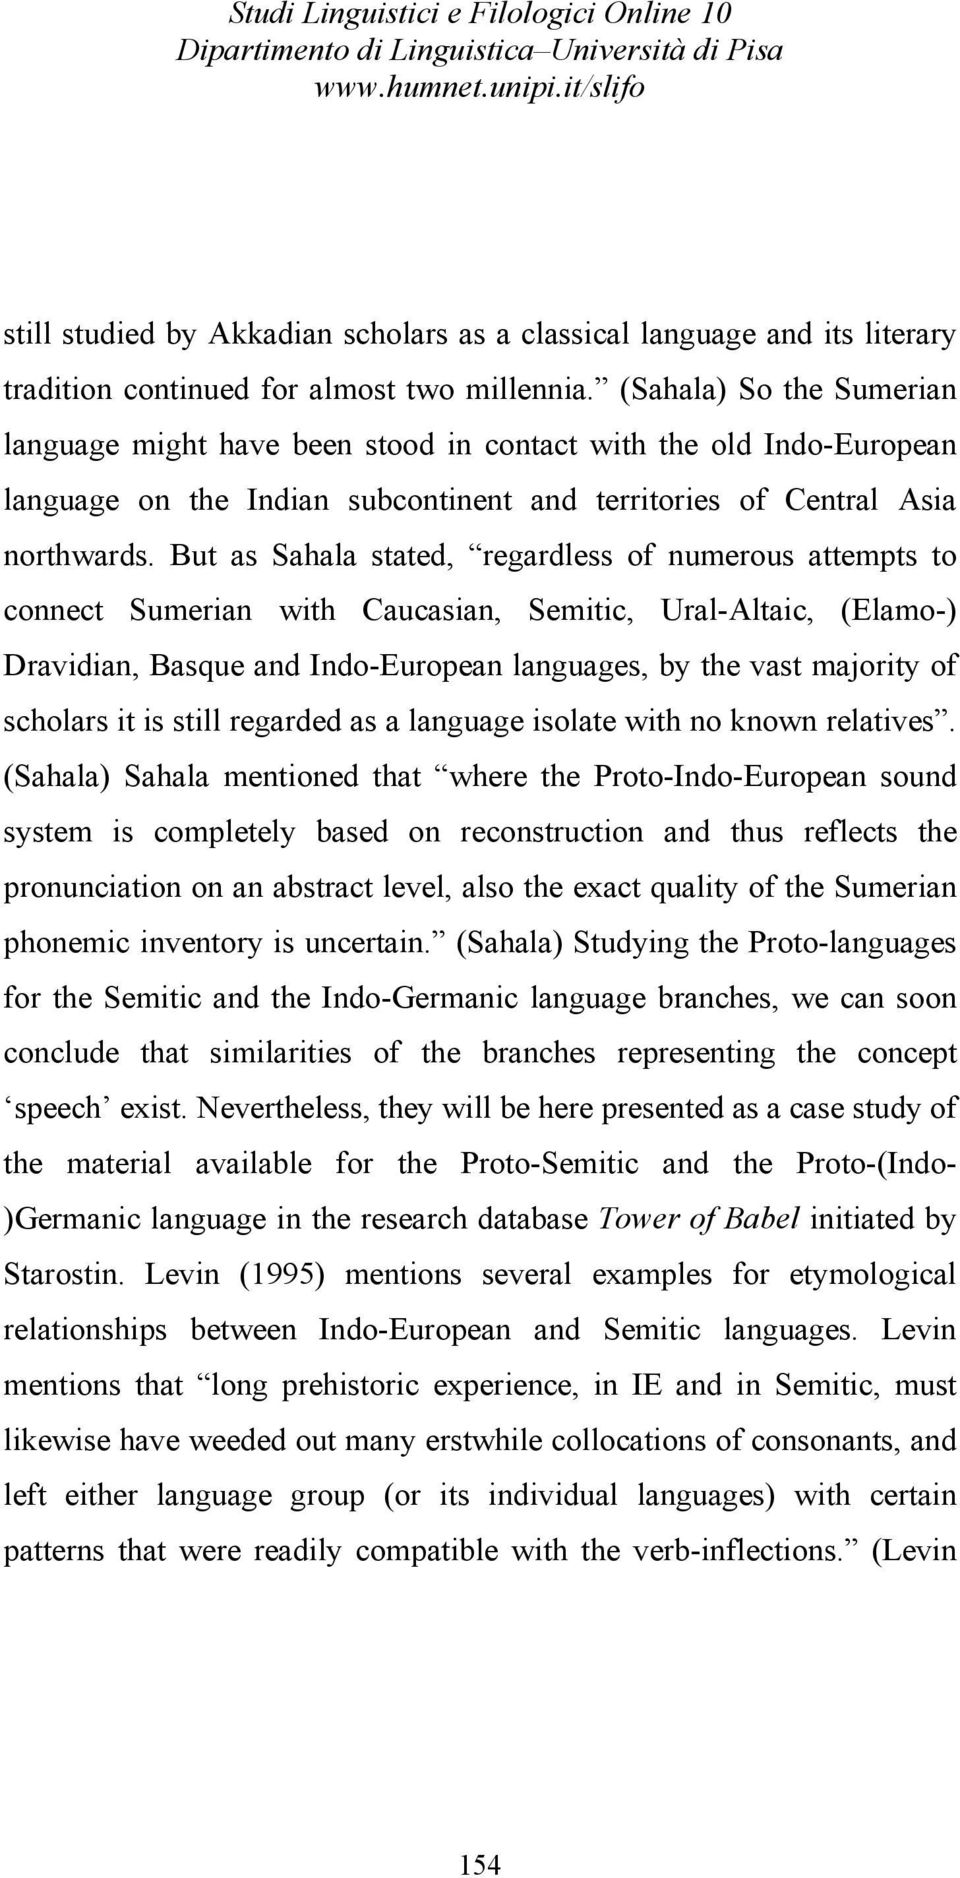 But as Sahala stated, regardless of numerous attempts to connect Sumerian with Caucasian, Semitic, Ural-Altaic, (Elamo-) Dravidian, Basque and Indo-European languages, by the vast majority of